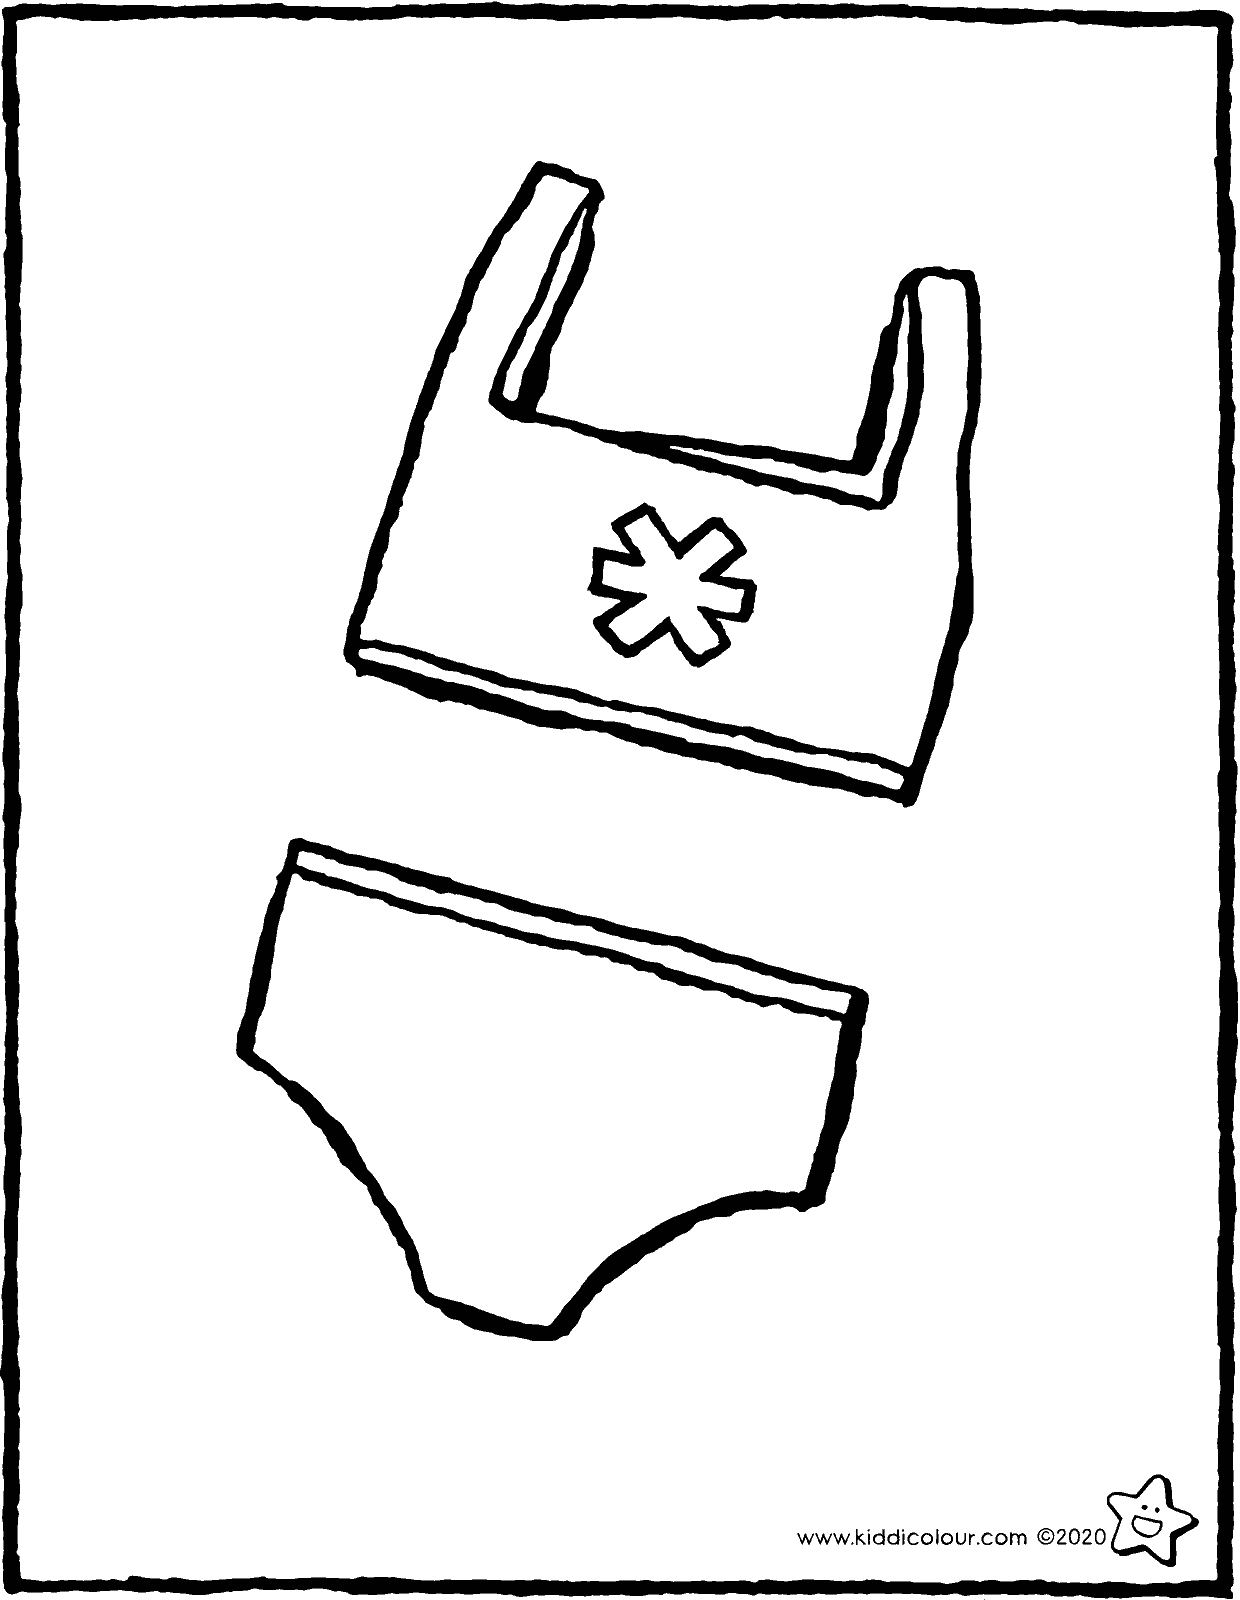 bikini colouring page drawing picture 01V